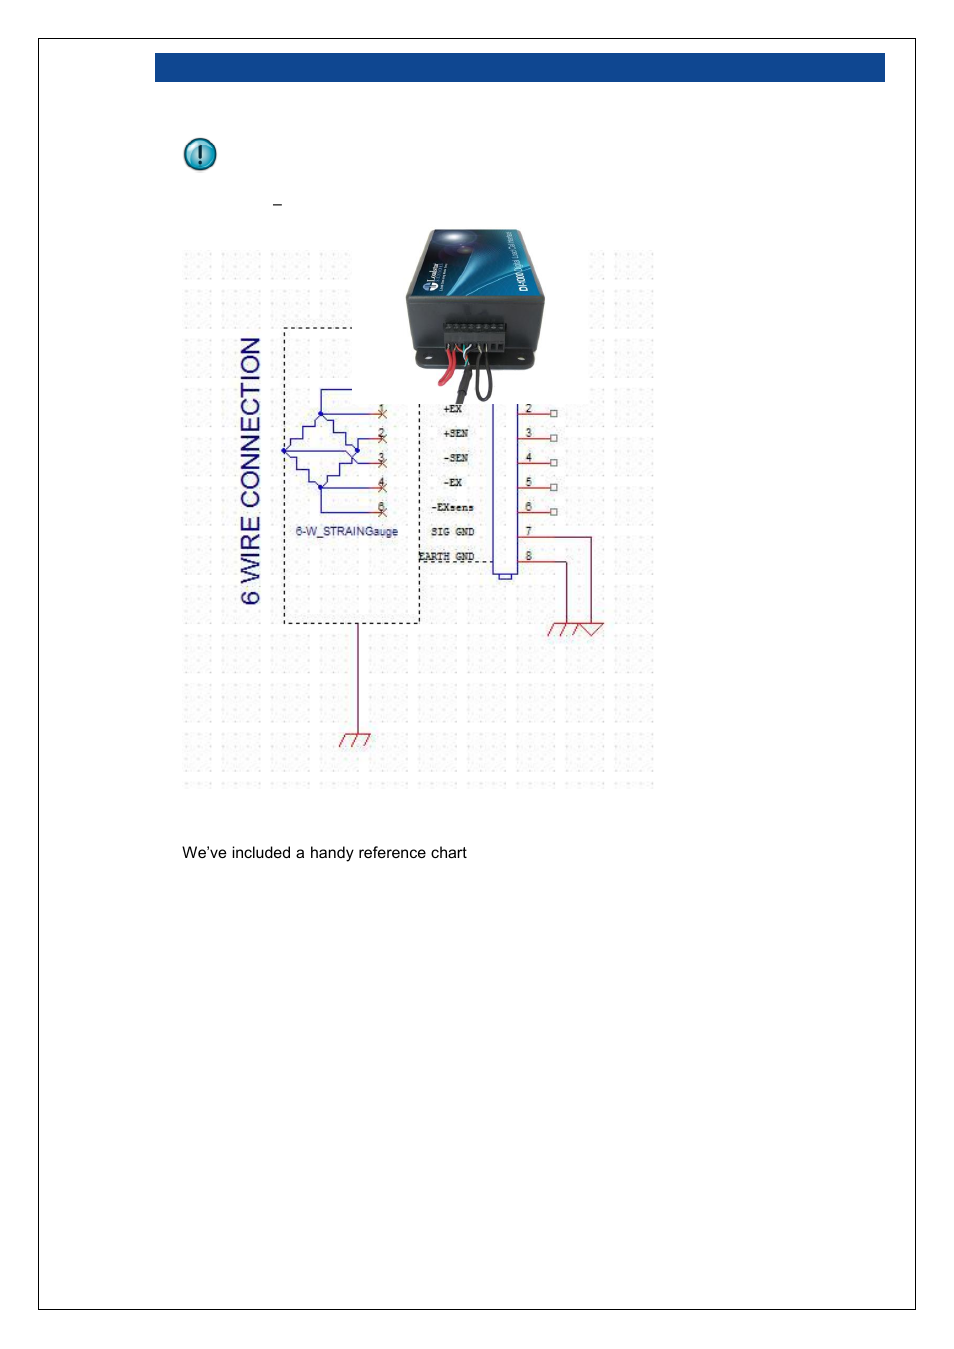 Figure 8: six wire load cell wiring schematic | Loadstar Sensors DI-1000U  Digital Load Cell Interface Manual User Manual | Page 11 / 25